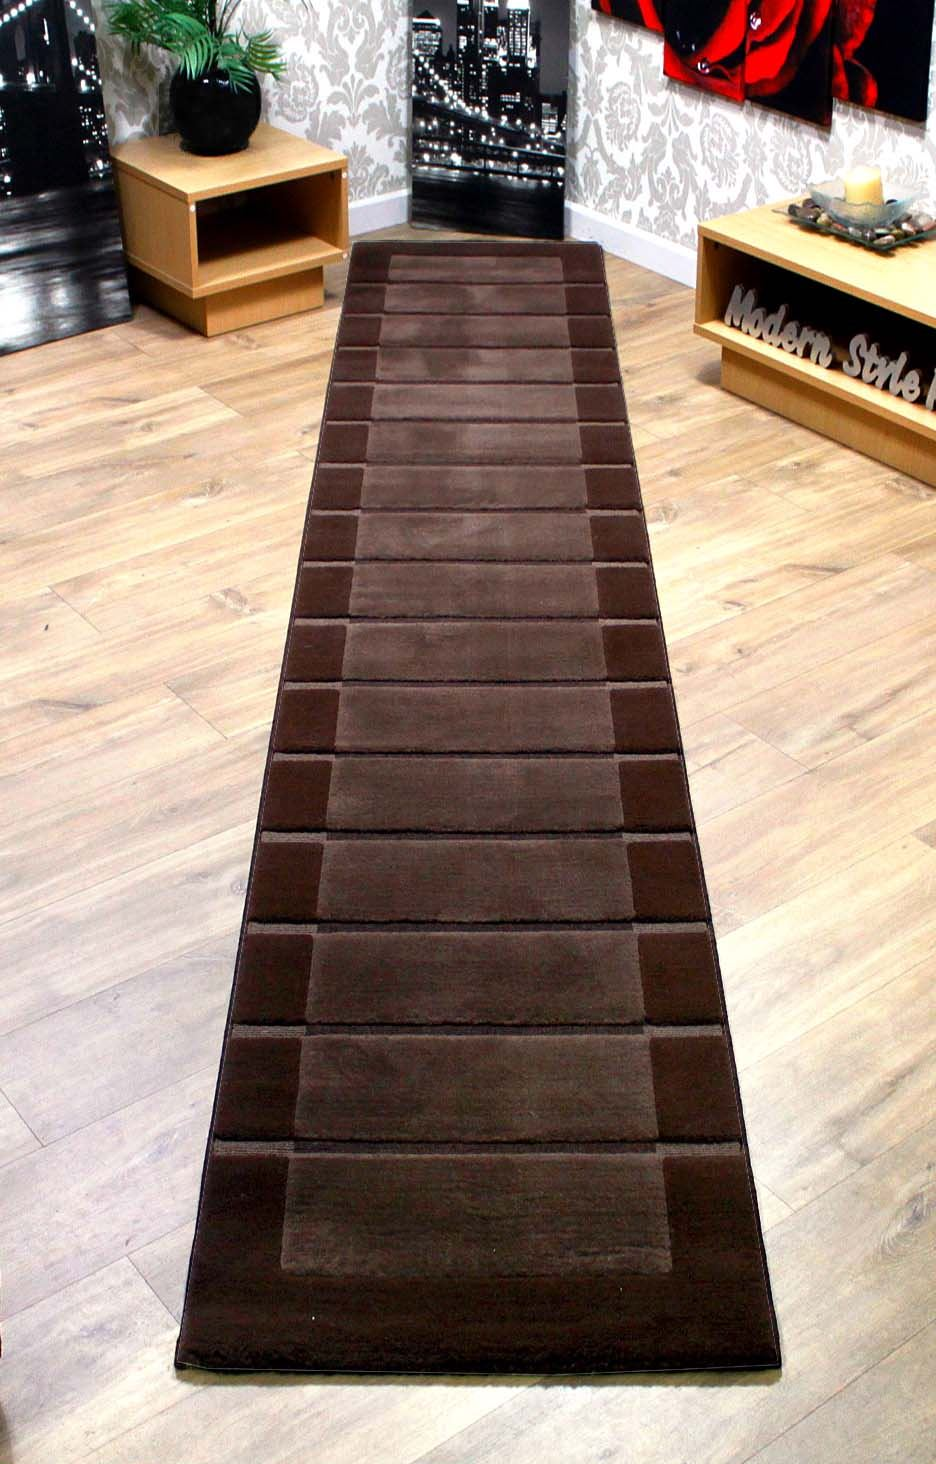 rrp extra long thick hallway runner rugs chocolate brown beige cream ebay. Black Bedroom Furniture Sets. Home Design Ideas